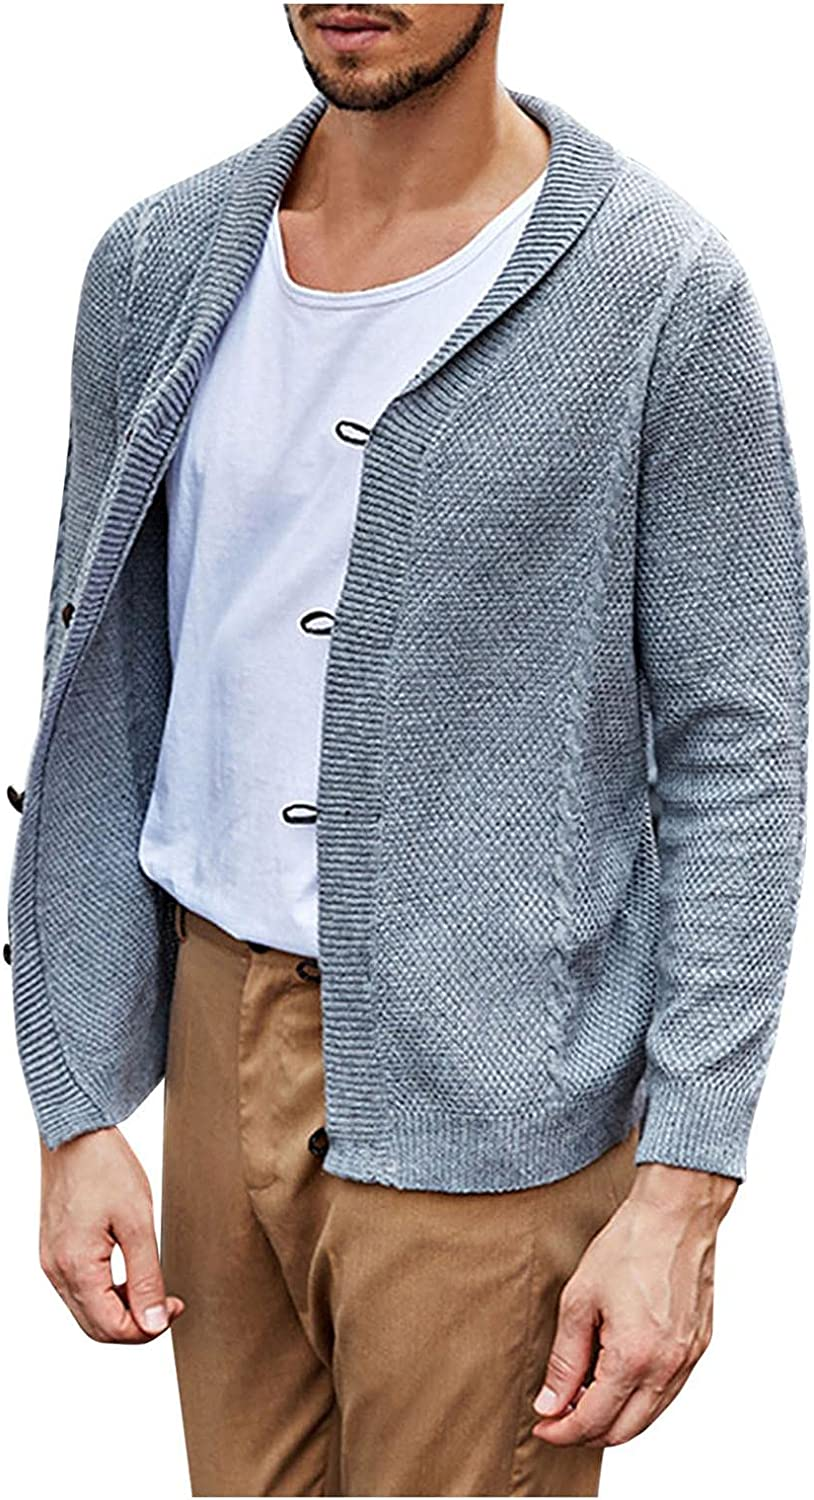 Huangse Men's Shawl Collar Knit Cardigan Sweater Single Breasted Thin Autumn Winter Warm Knitted Sweaters